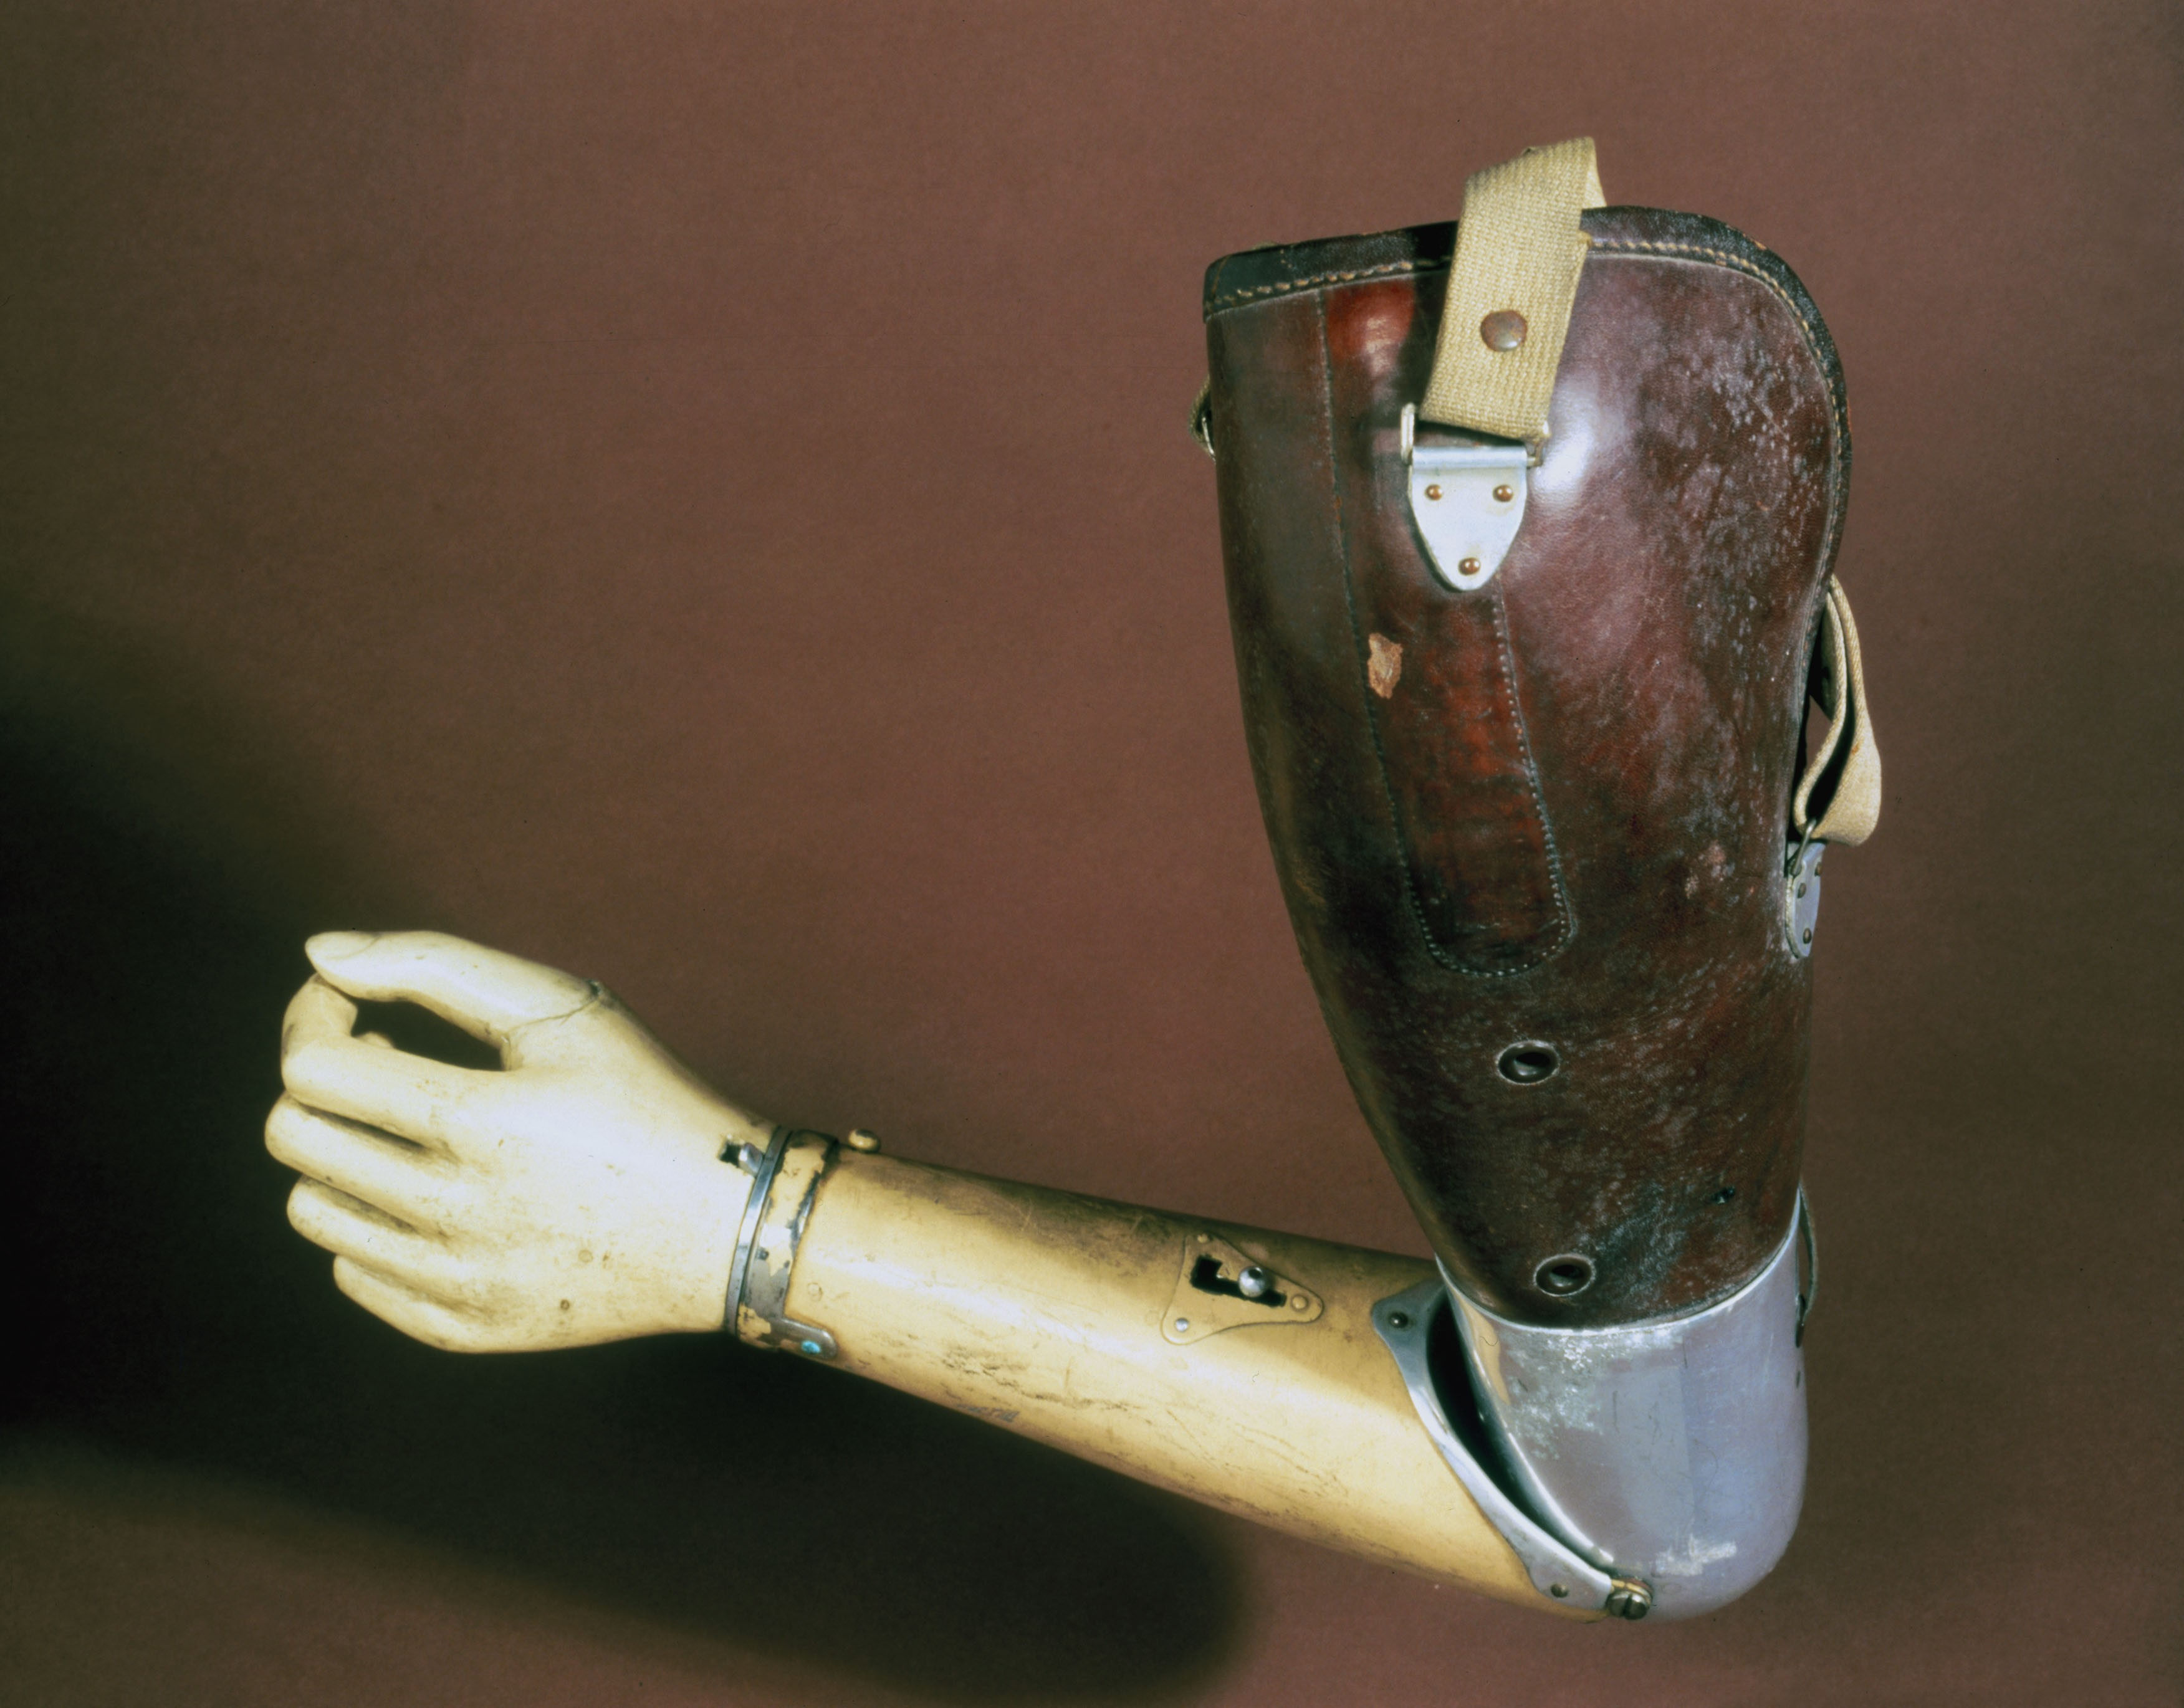 how to clean prosthetic arm